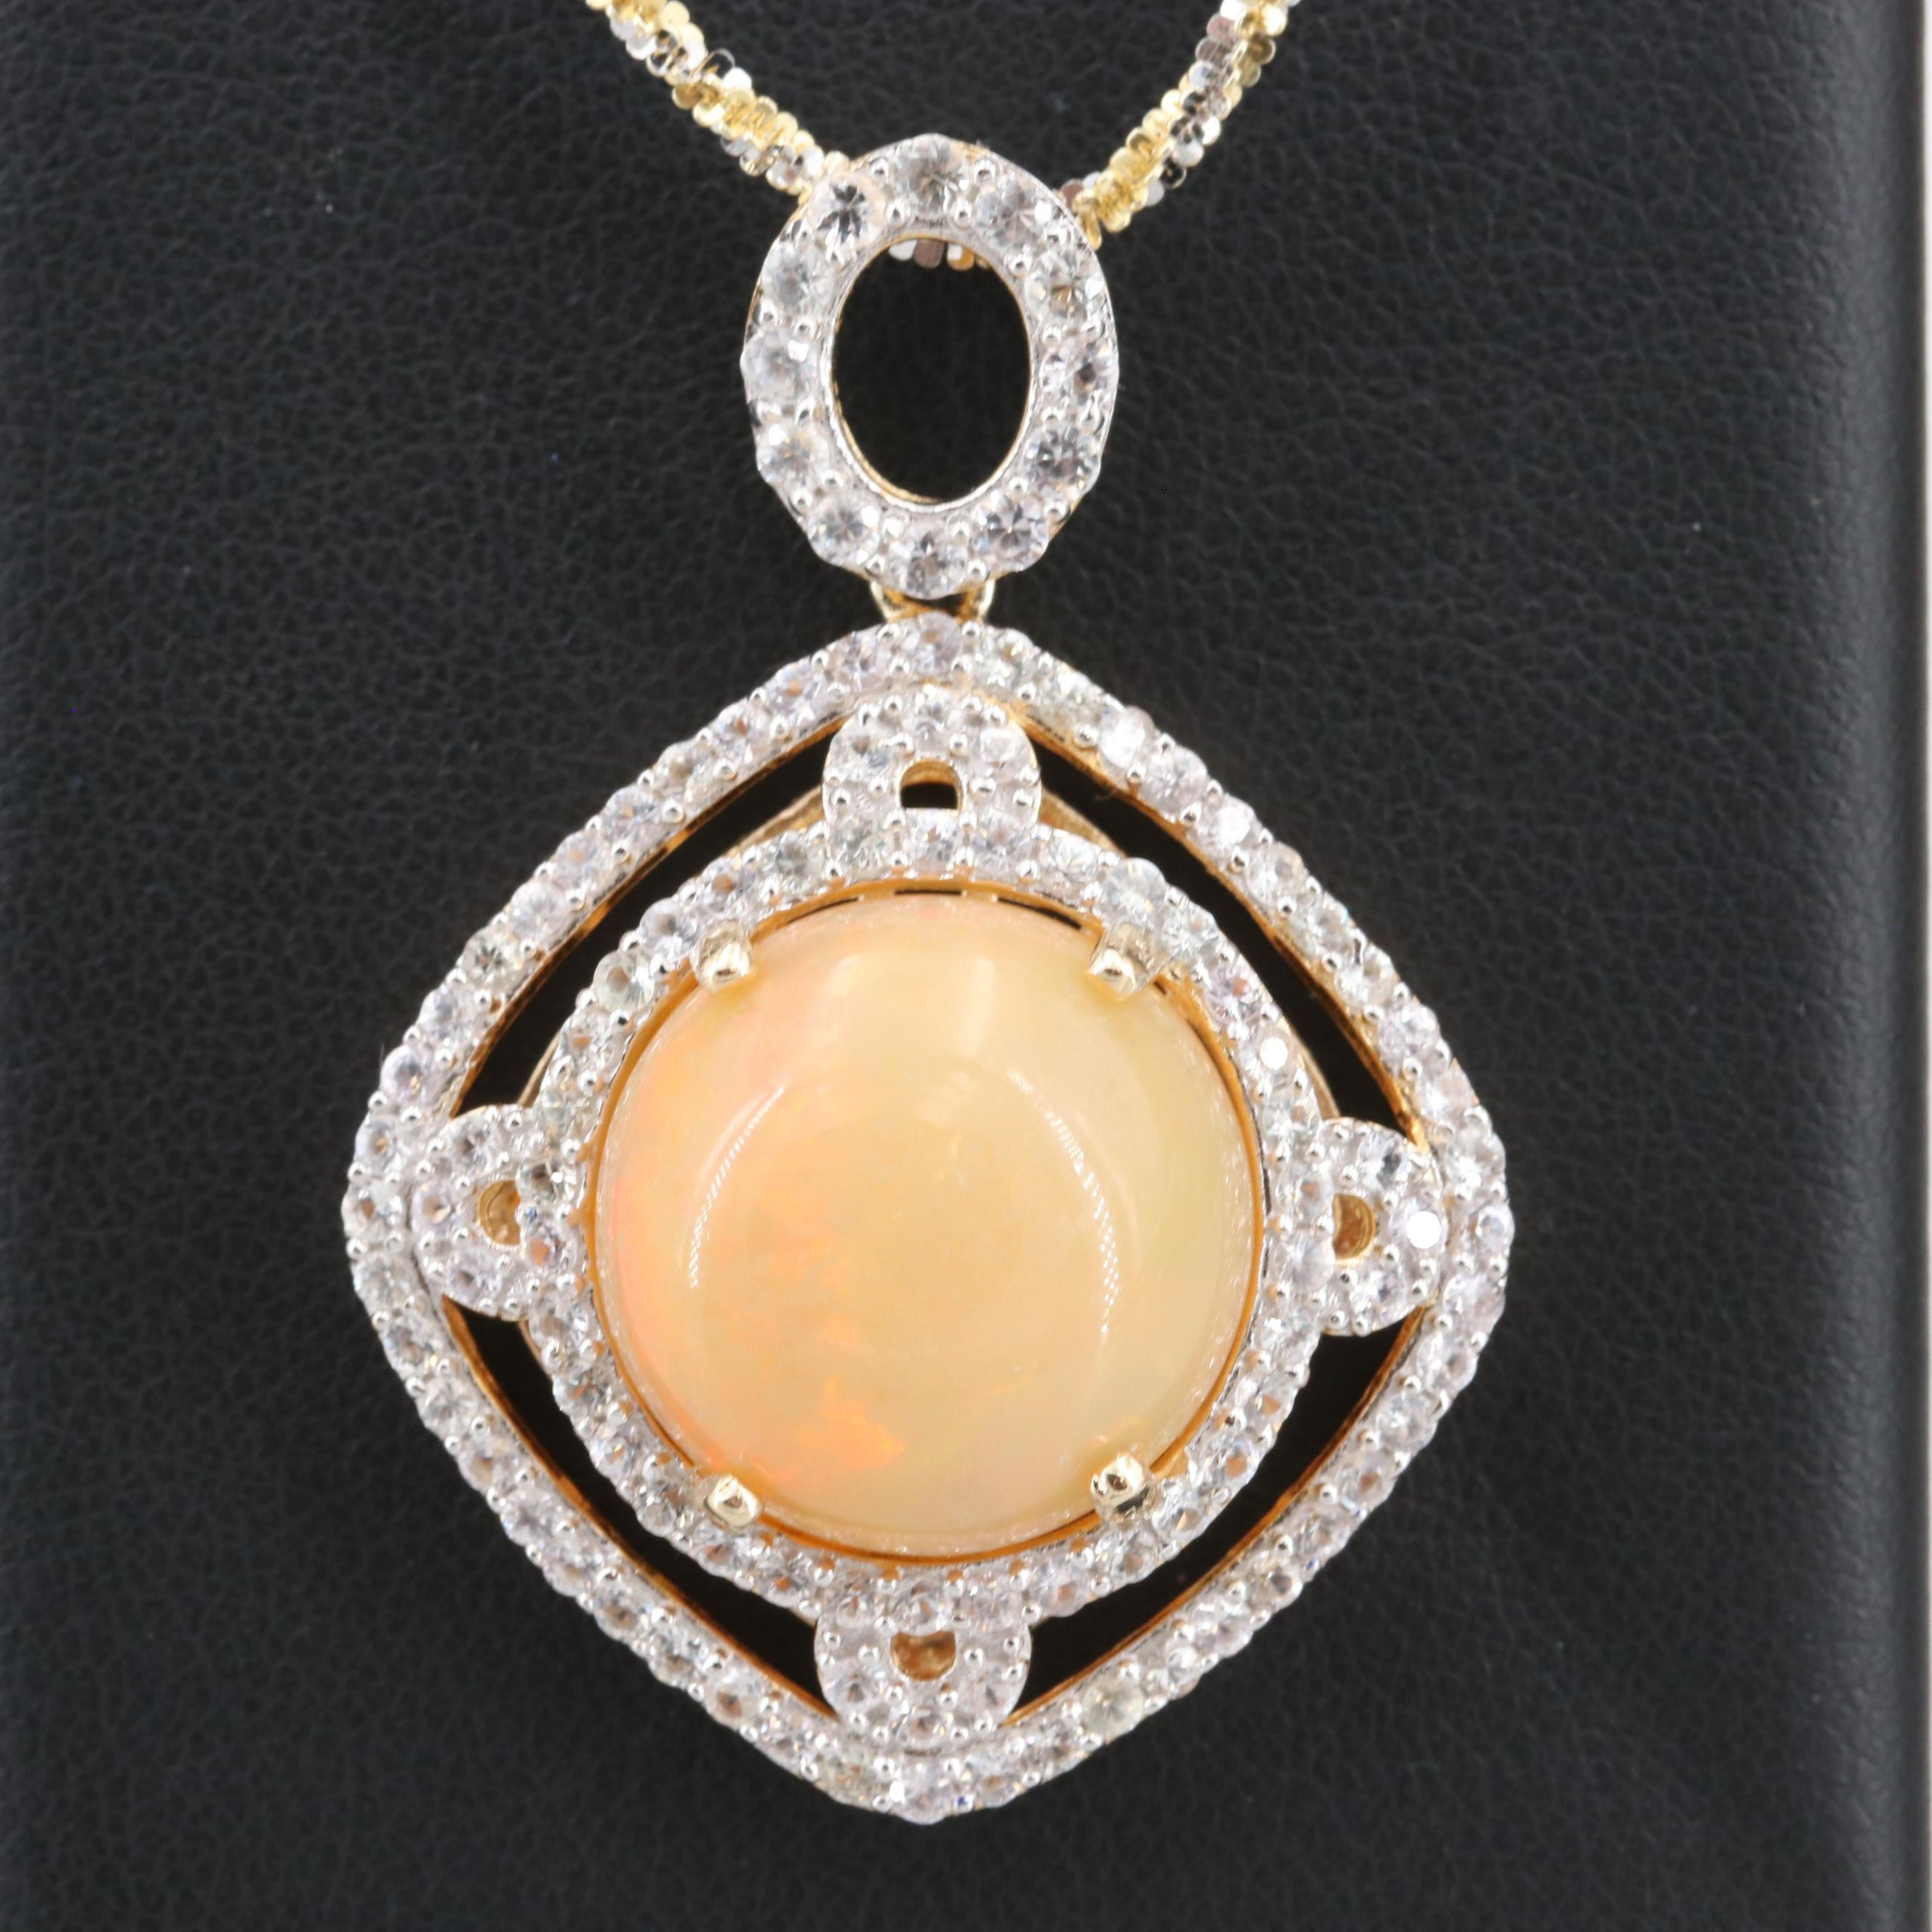 Sterling Opal and White Sapphire Pendant Necklace with Two-Tone Twist Chain